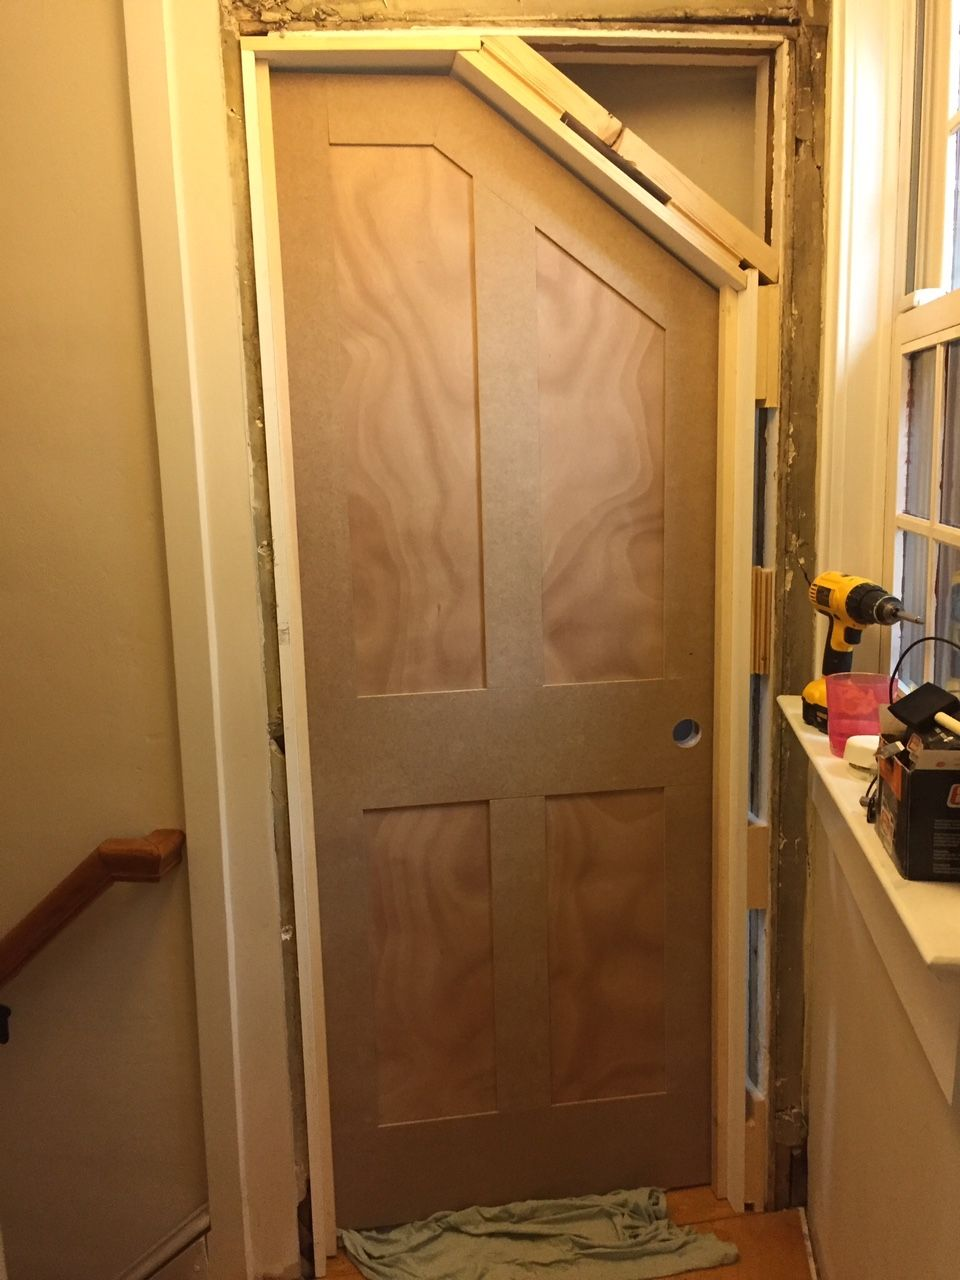 DIY - How to Build an Angled Door - One Room Challenge Week 5 & Internal door angled to match sloping ceiling | Attic Bedroom ... pezcame.com